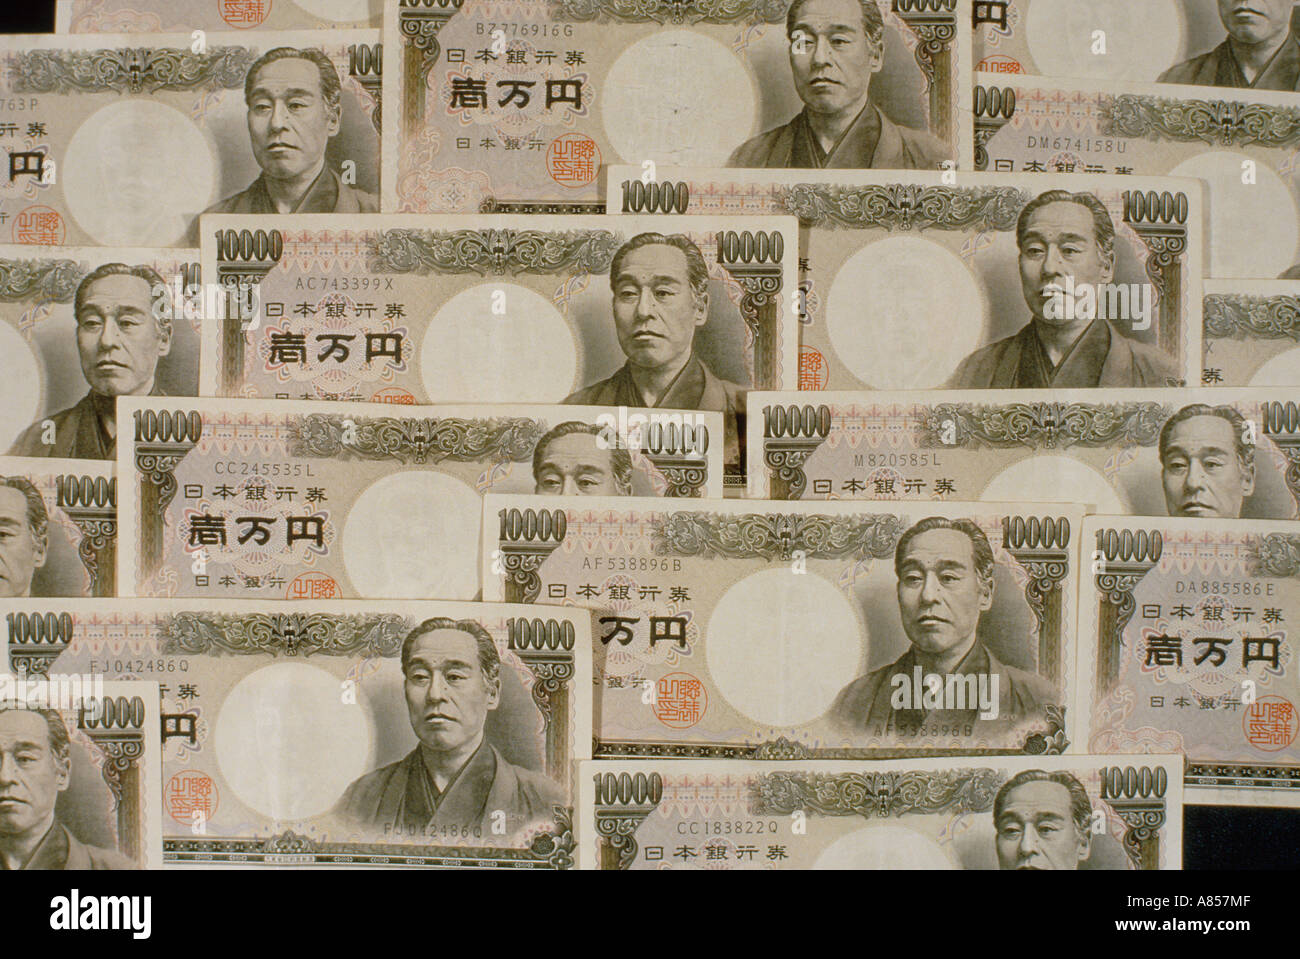 Still-life of old Japanese Yen 10,000 notes. - Stock Image